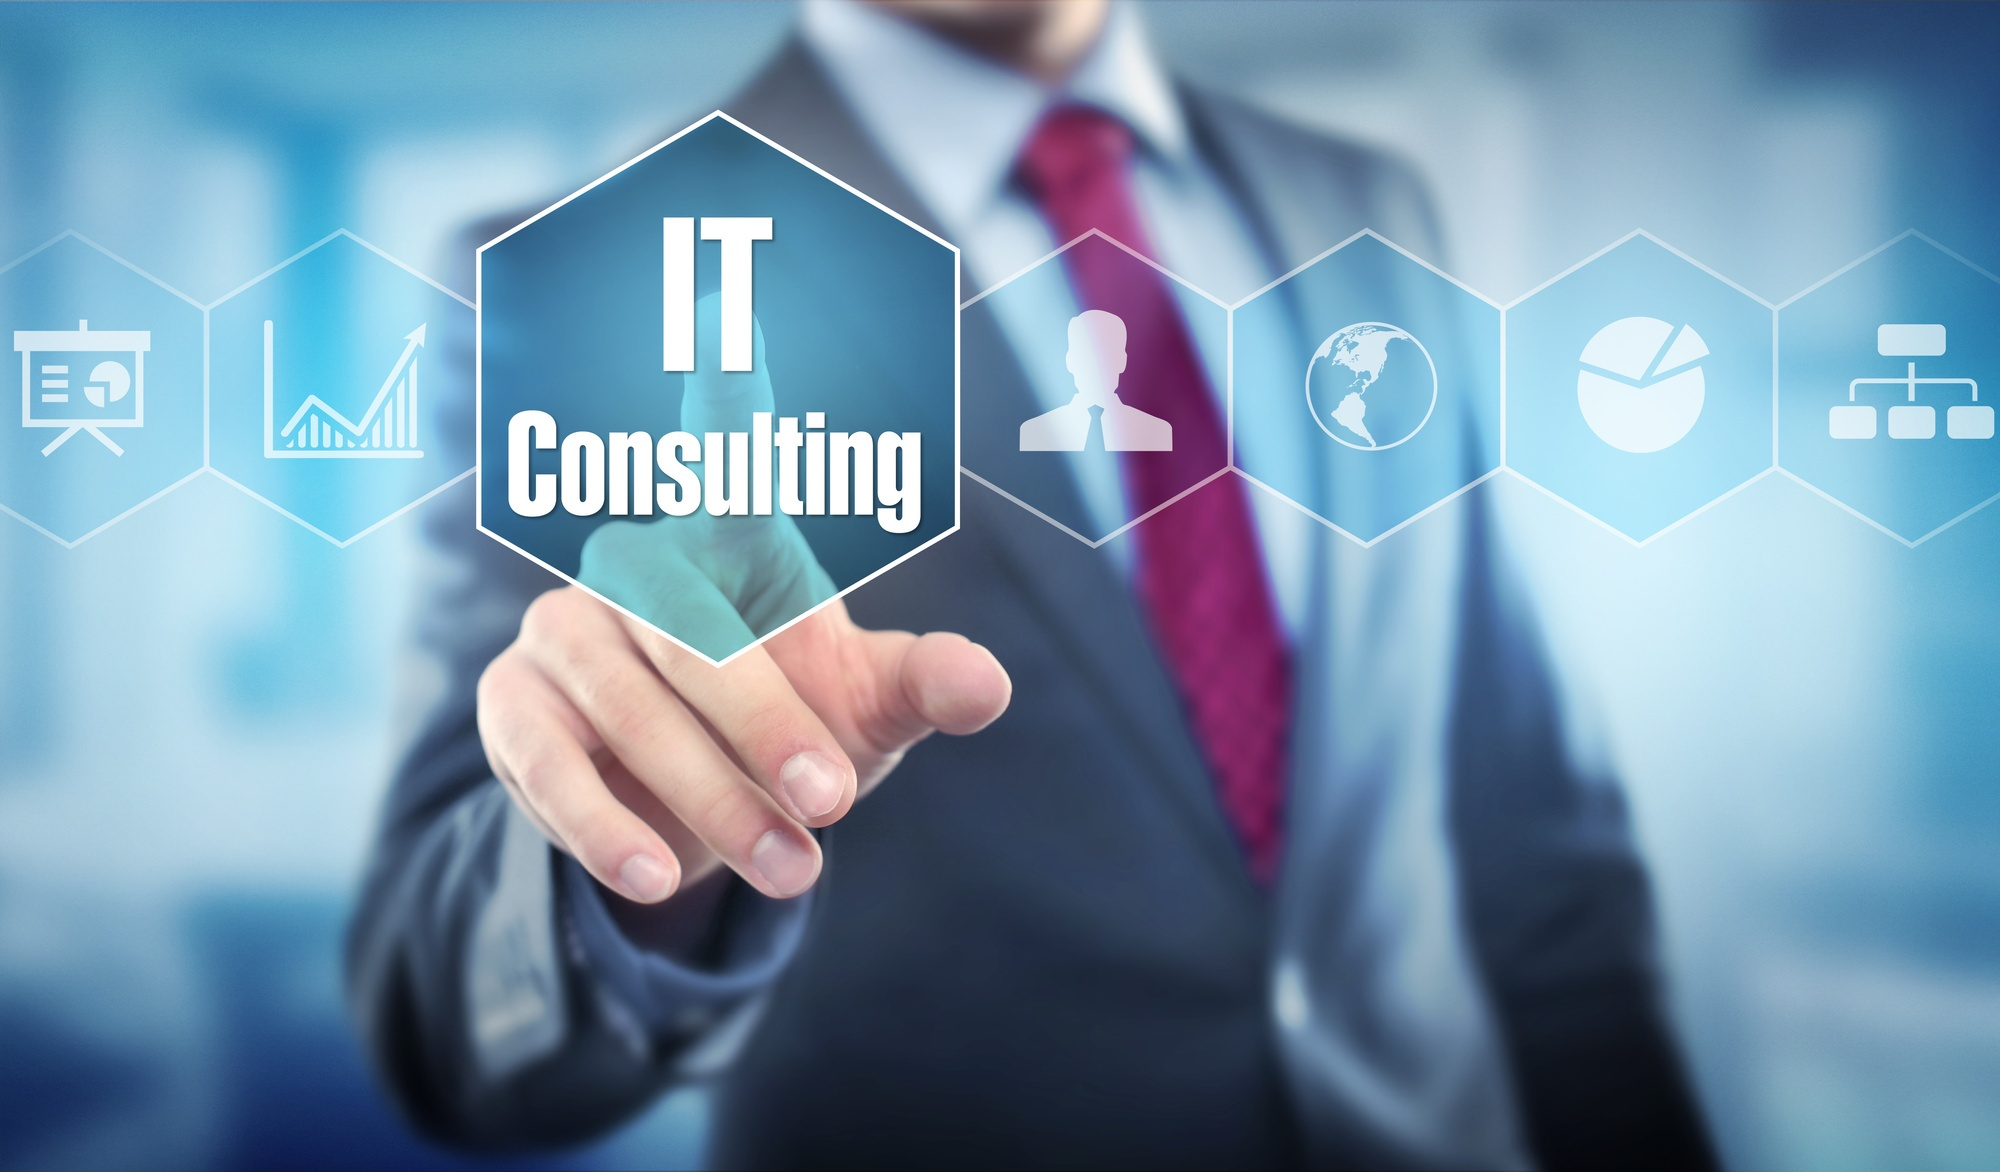 5-ways-it-consulting-can-benefit-your-healthcare-business at mindtimemoney